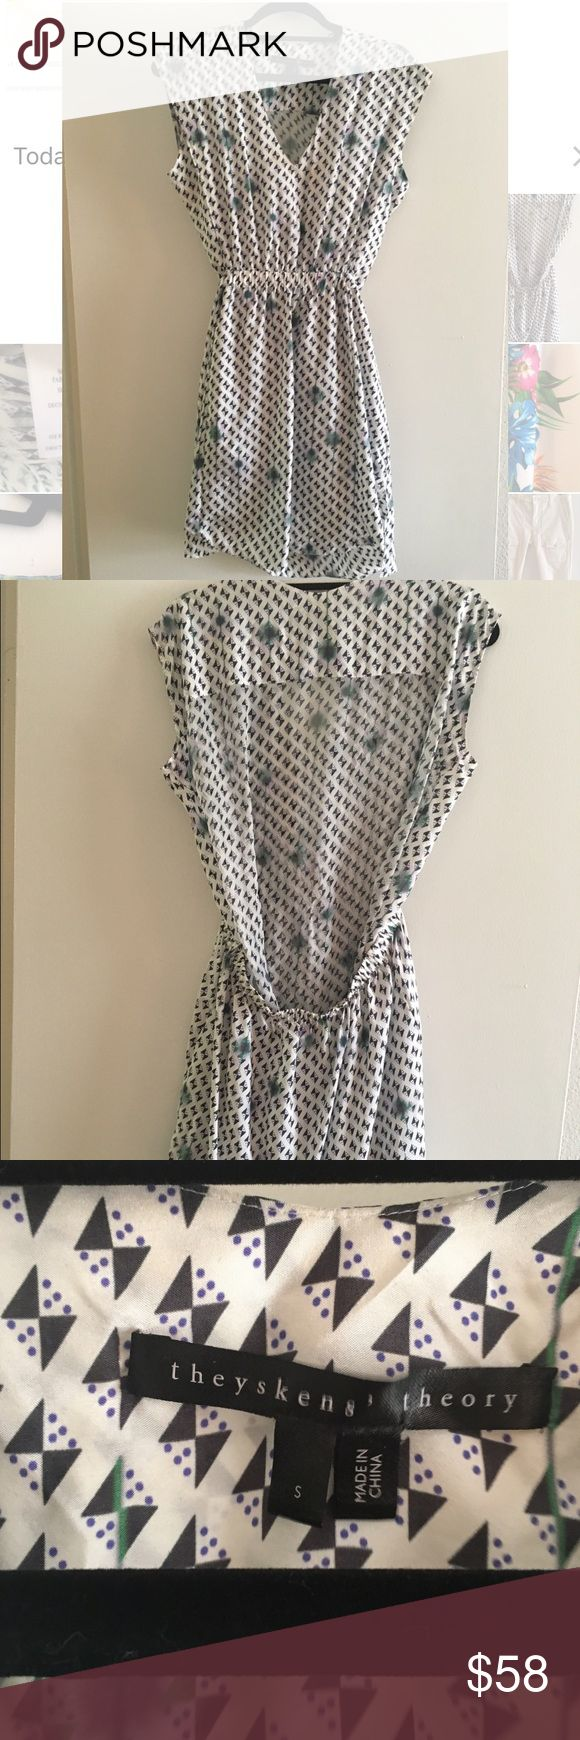 Theyskens Theory Printed Day Dress Theyskens theory silk day dress! So comfy and perfect for a day out and about. Small stain at v-neck but priced to cover dry cleaning charges. Size small but could fit up to medium! Theysken's Theory Dresses Mini